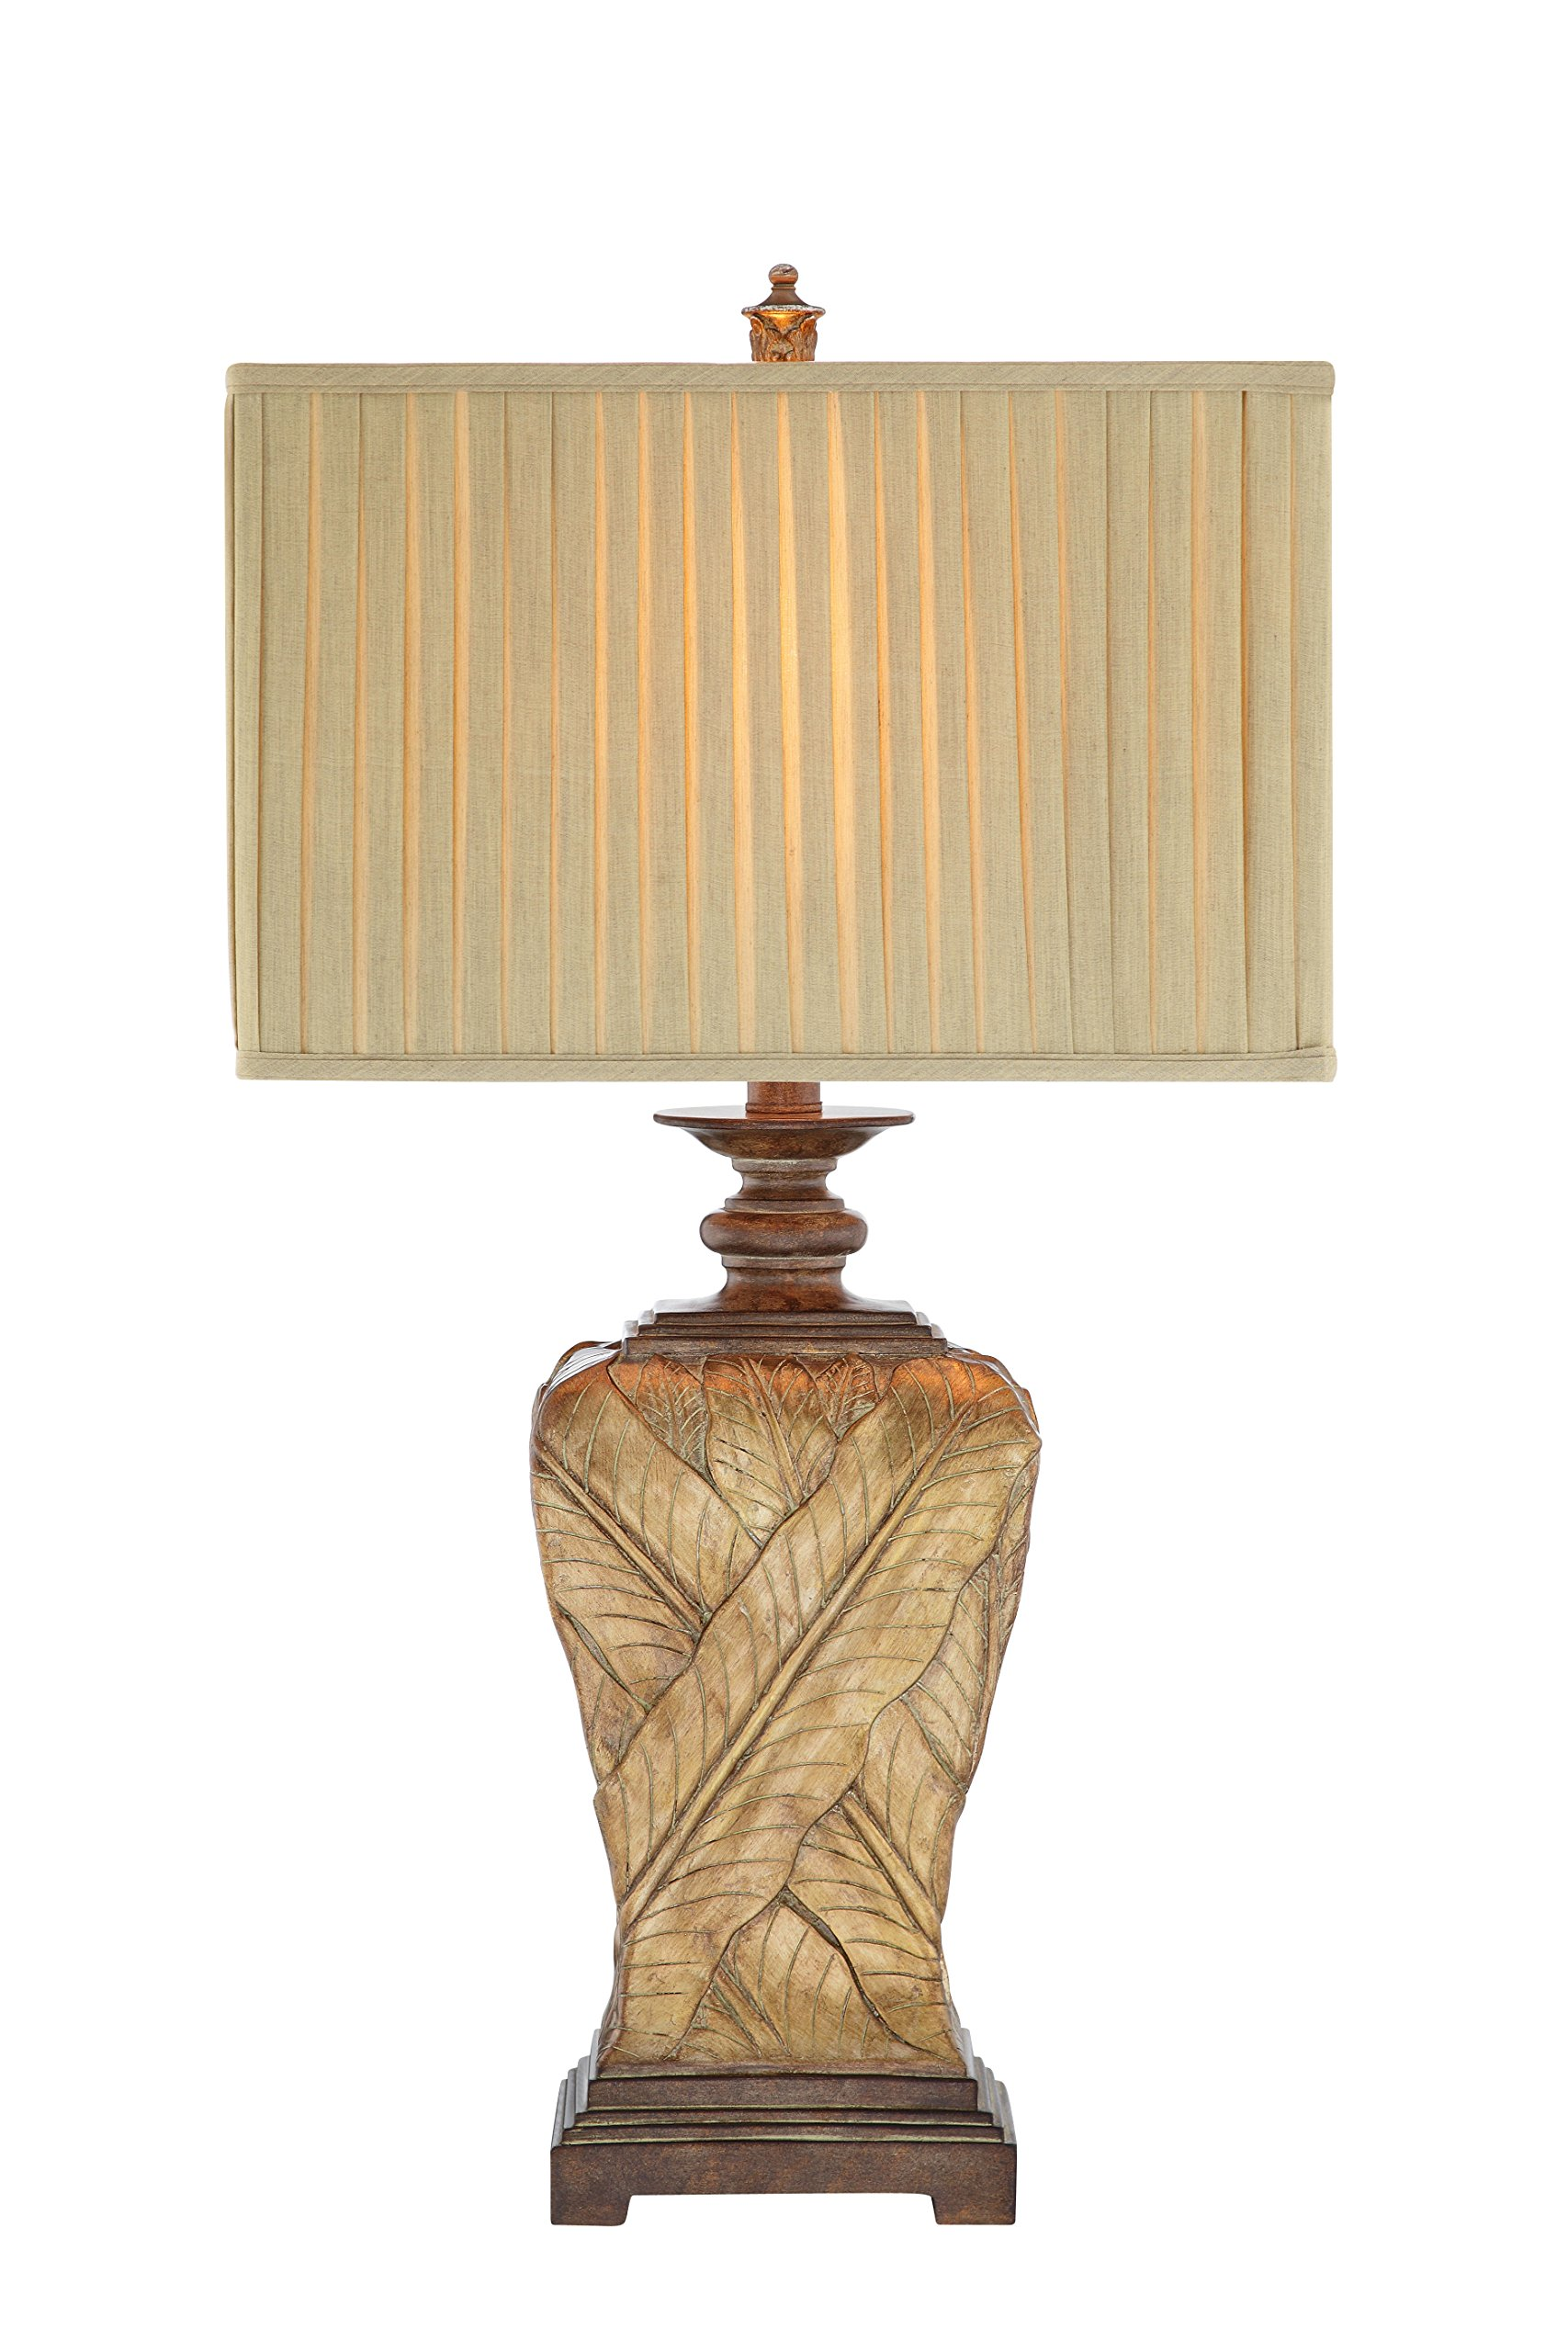 Catalina 19083-000 3-Way 32-Inch Wrapped Leaf Table Lamp and Rectangular Pleated Fabric Shade